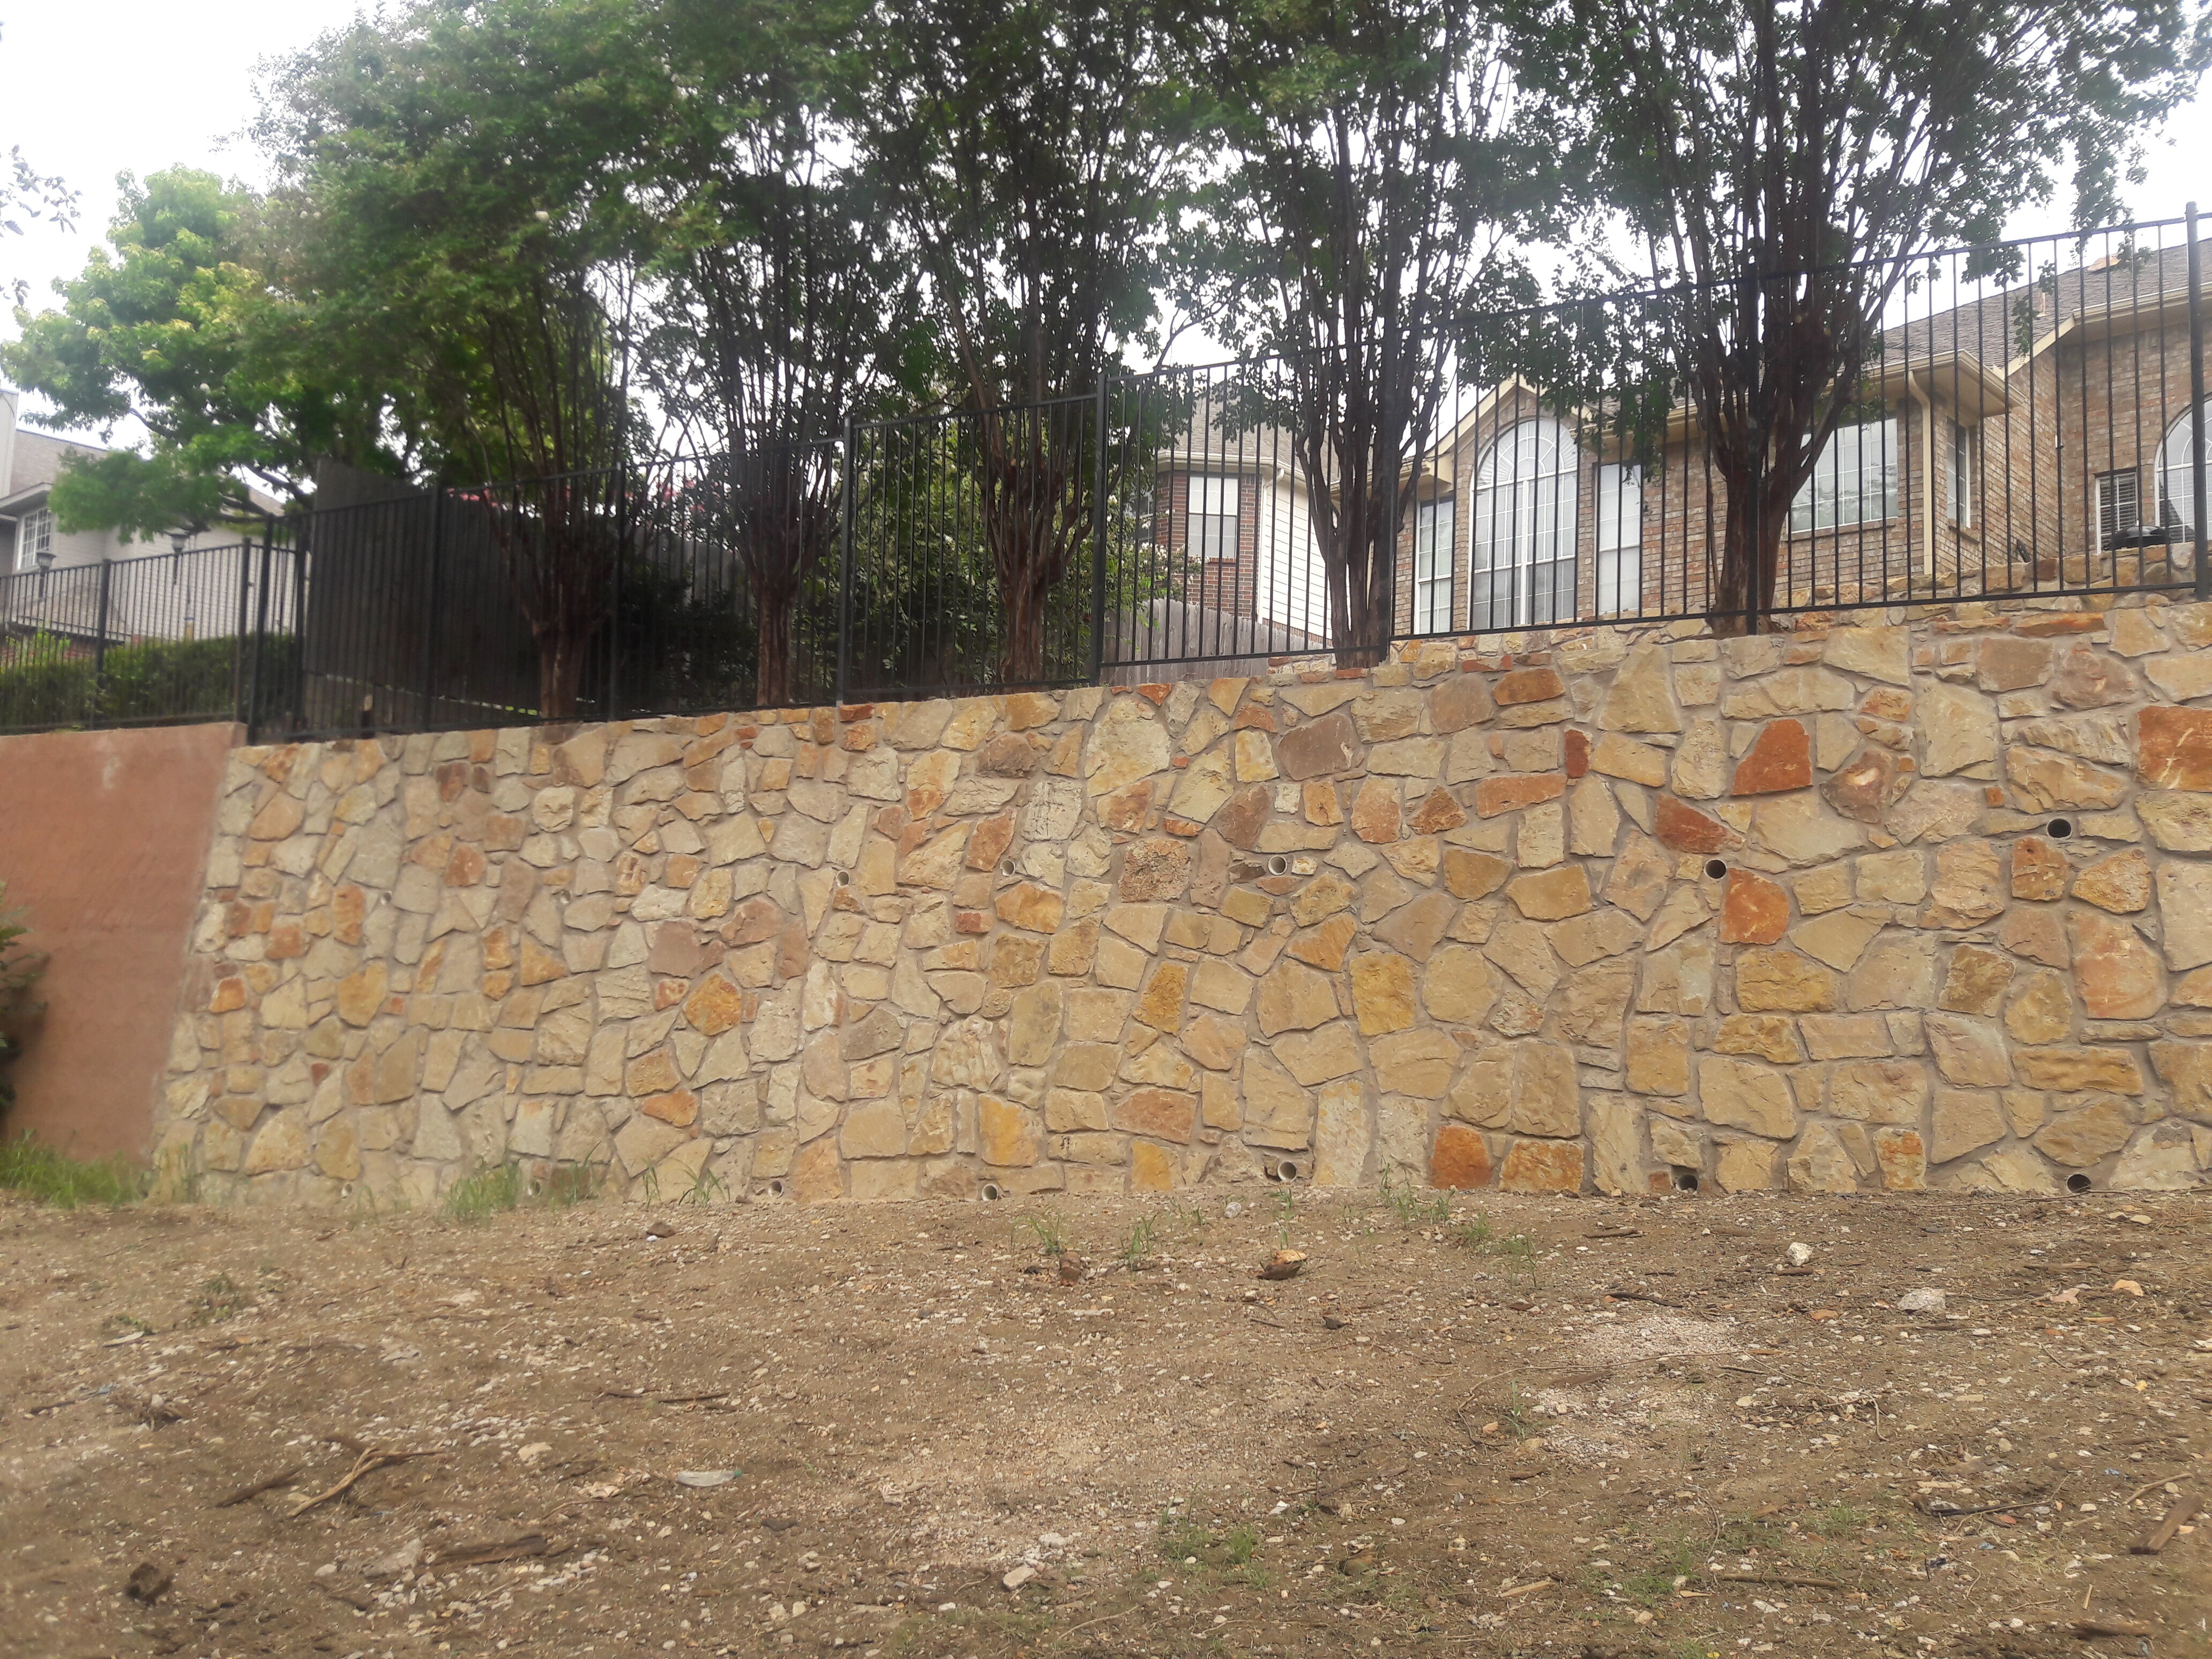 Retaining Wall With Stairs 1 Retaining Wall With Stairs 2 ...